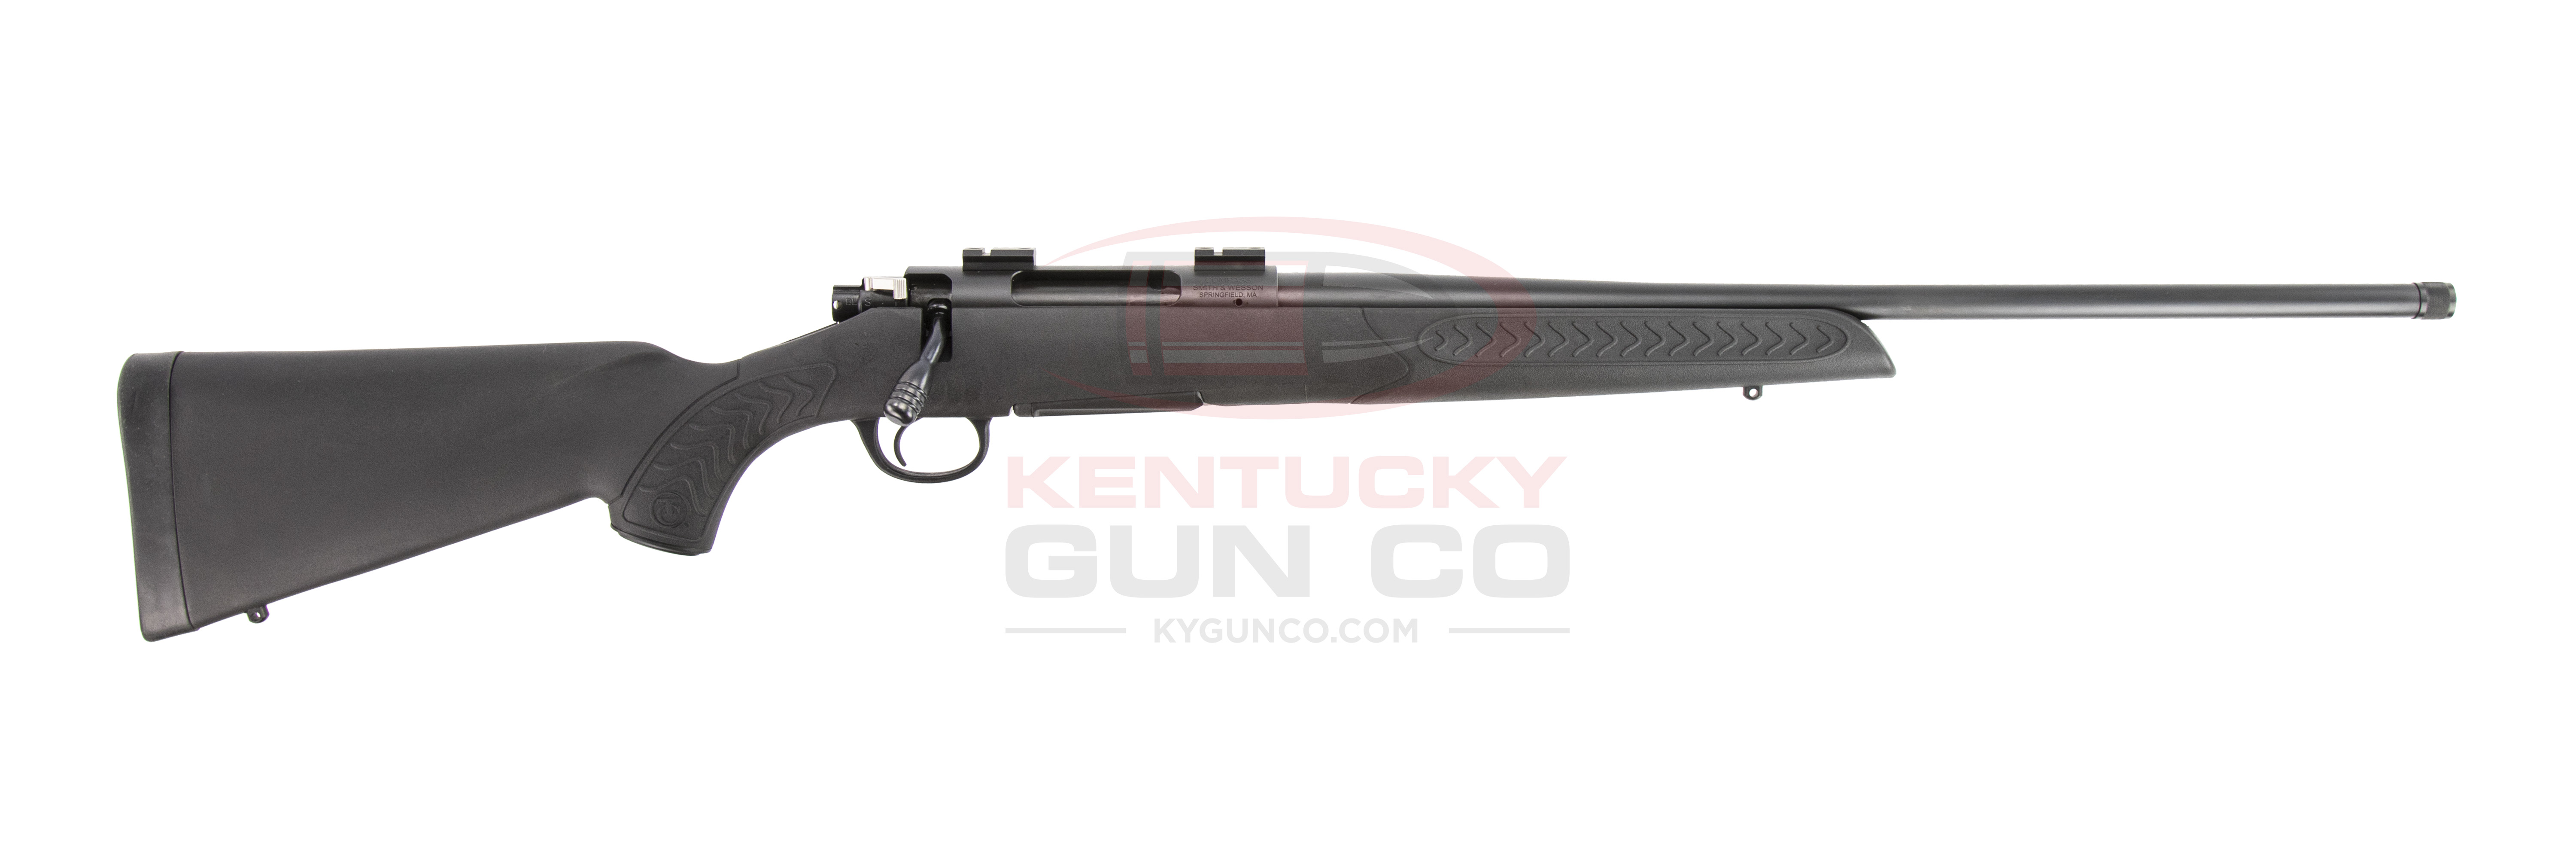 "Compass Rifle 30-06 22"" TB 5+1"